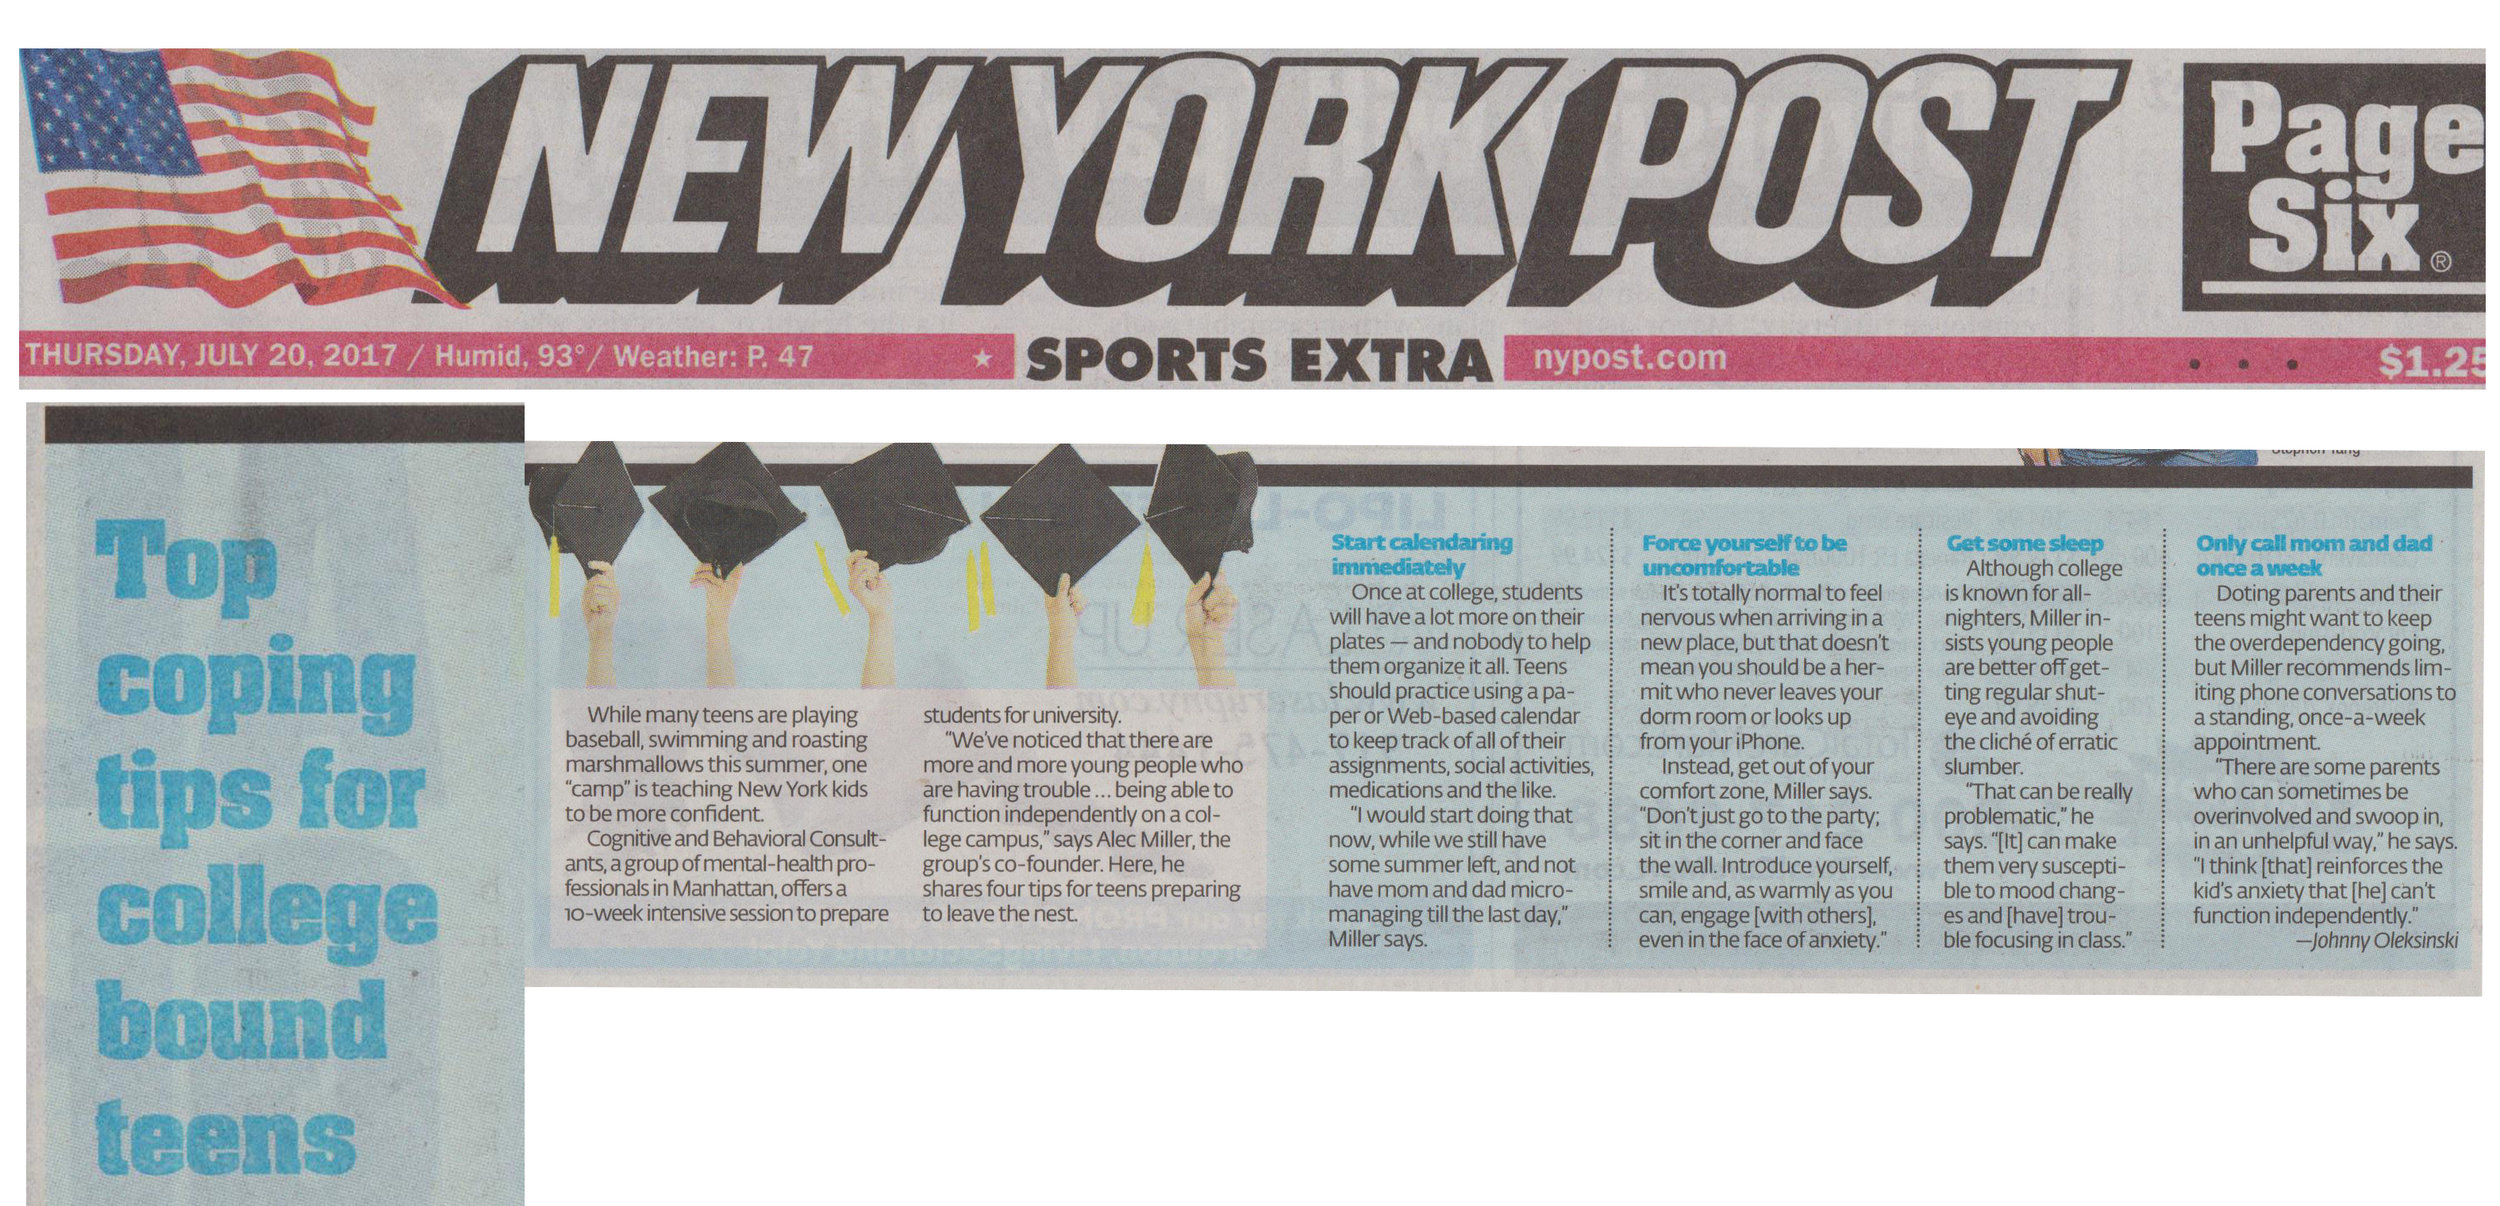 ny post full article_edited-1.jpg